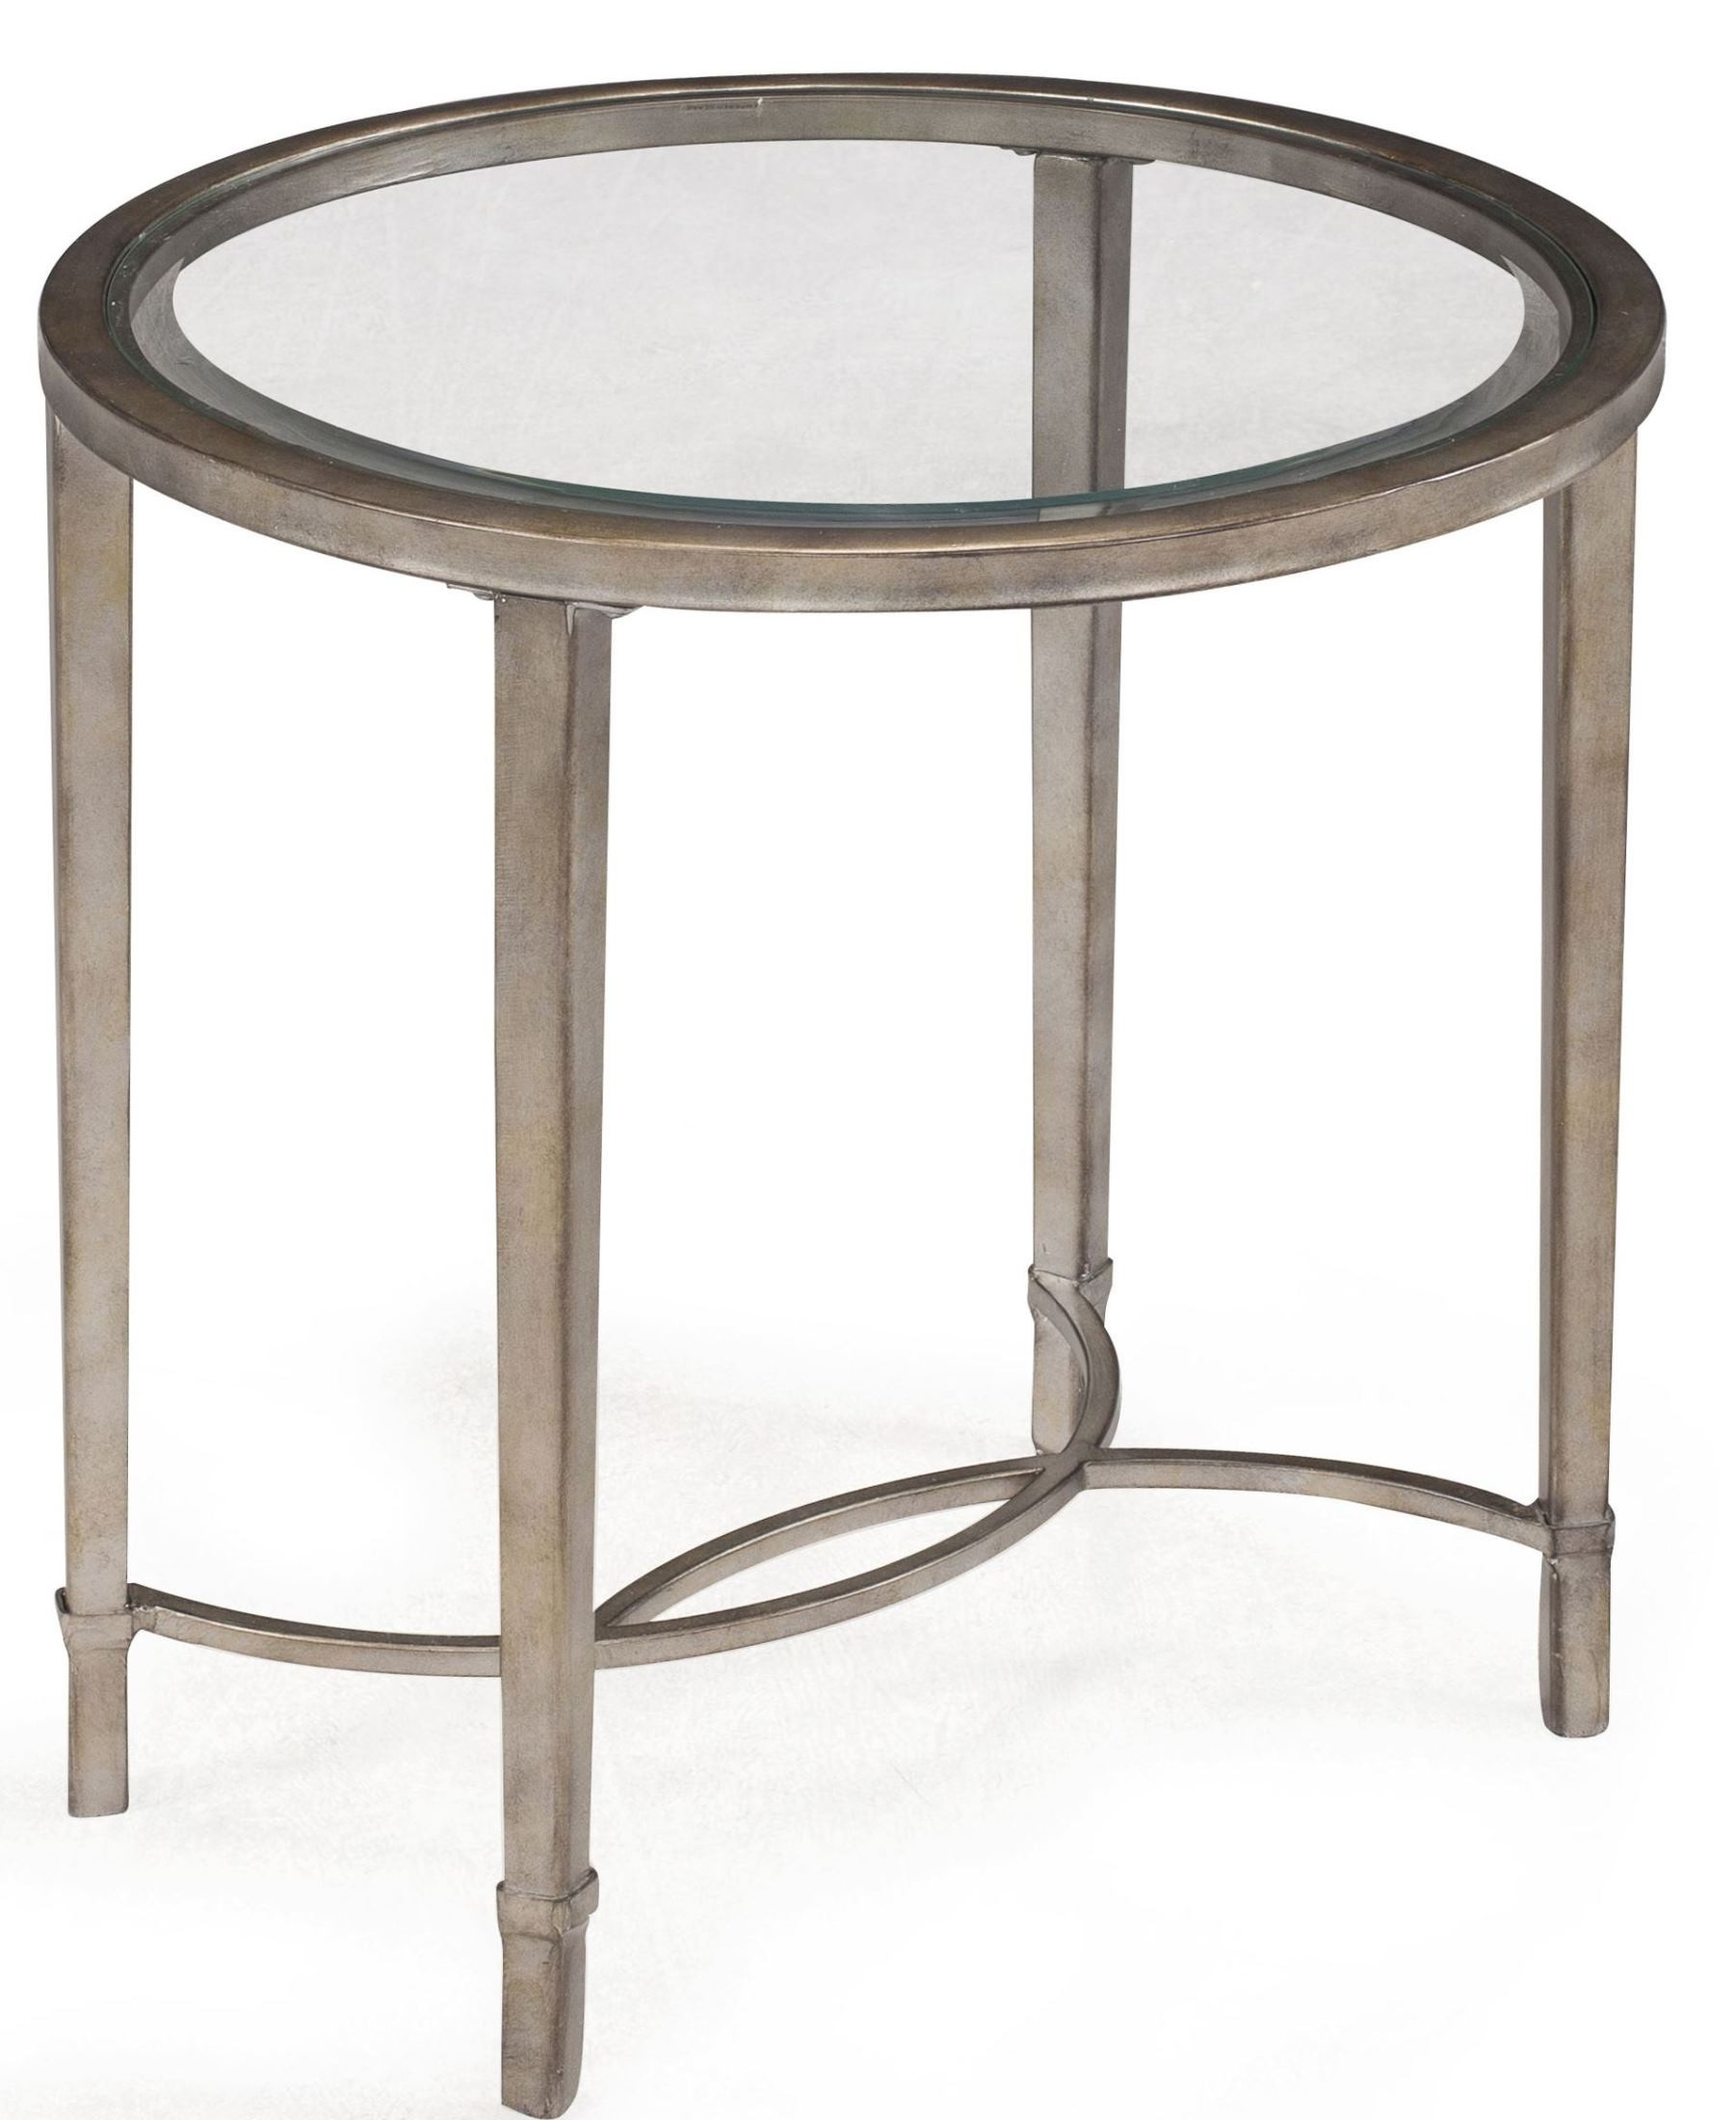 Copia oval end table from magnussen home t